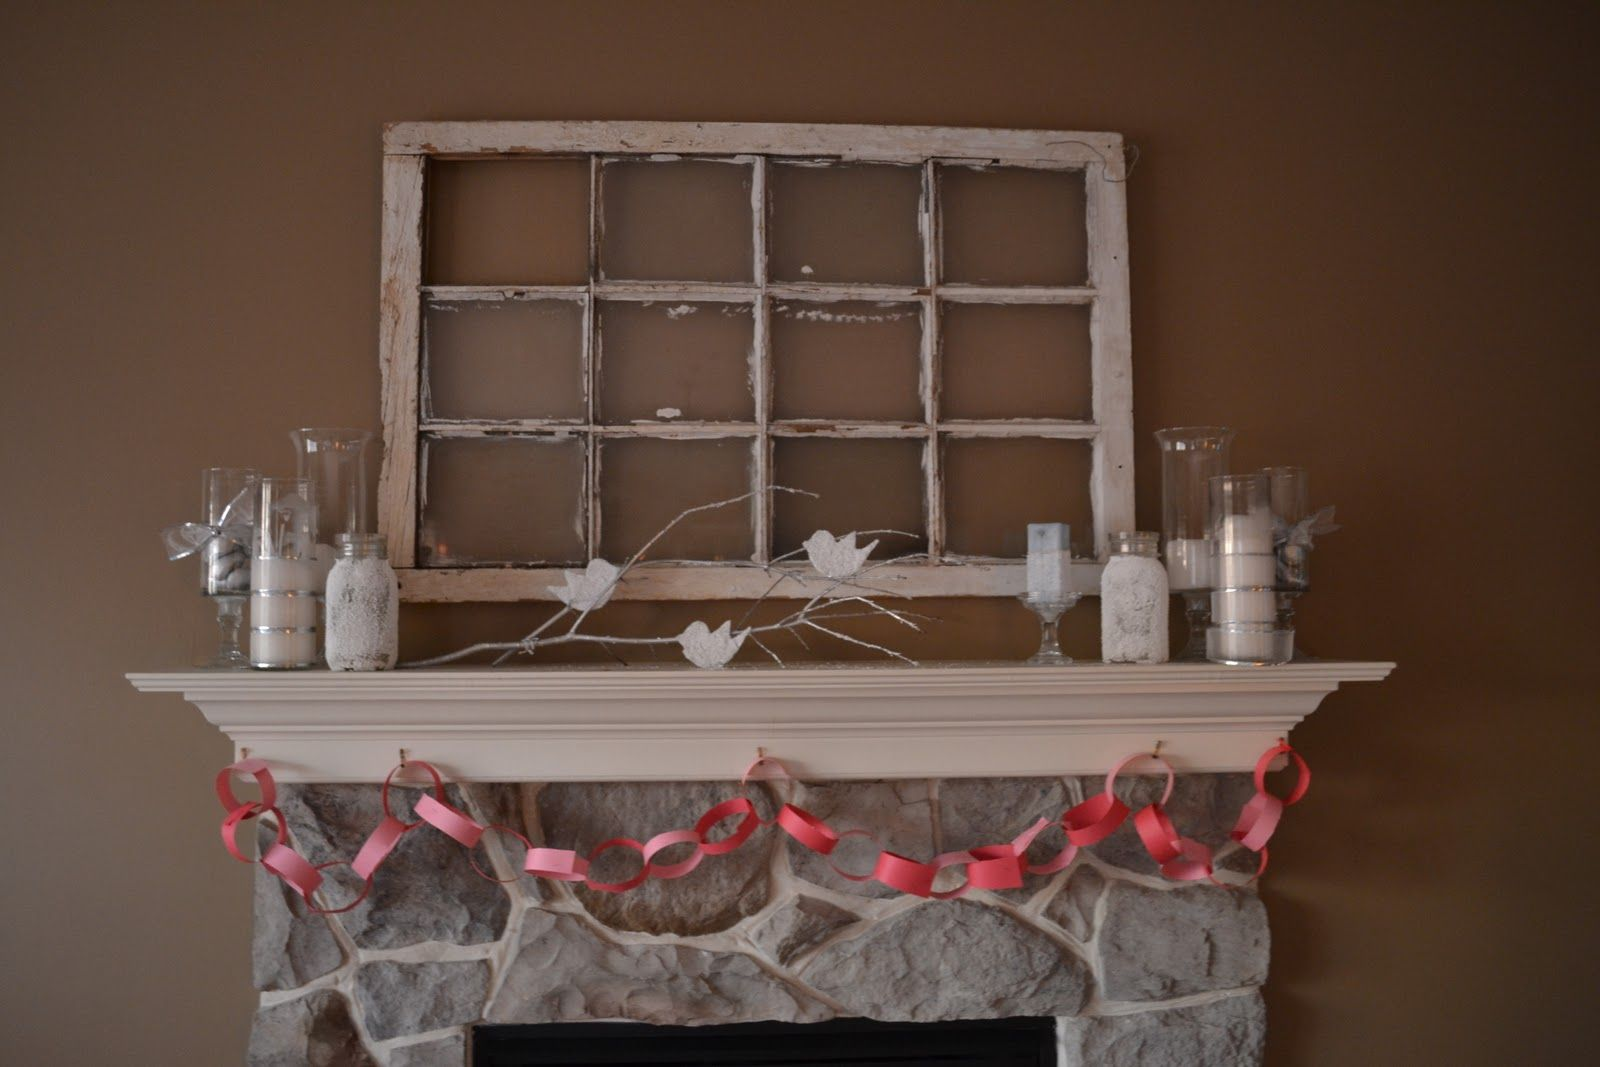 Ideas for old window frames  old window  wall decor  additiondecoratingbig room  pinterest